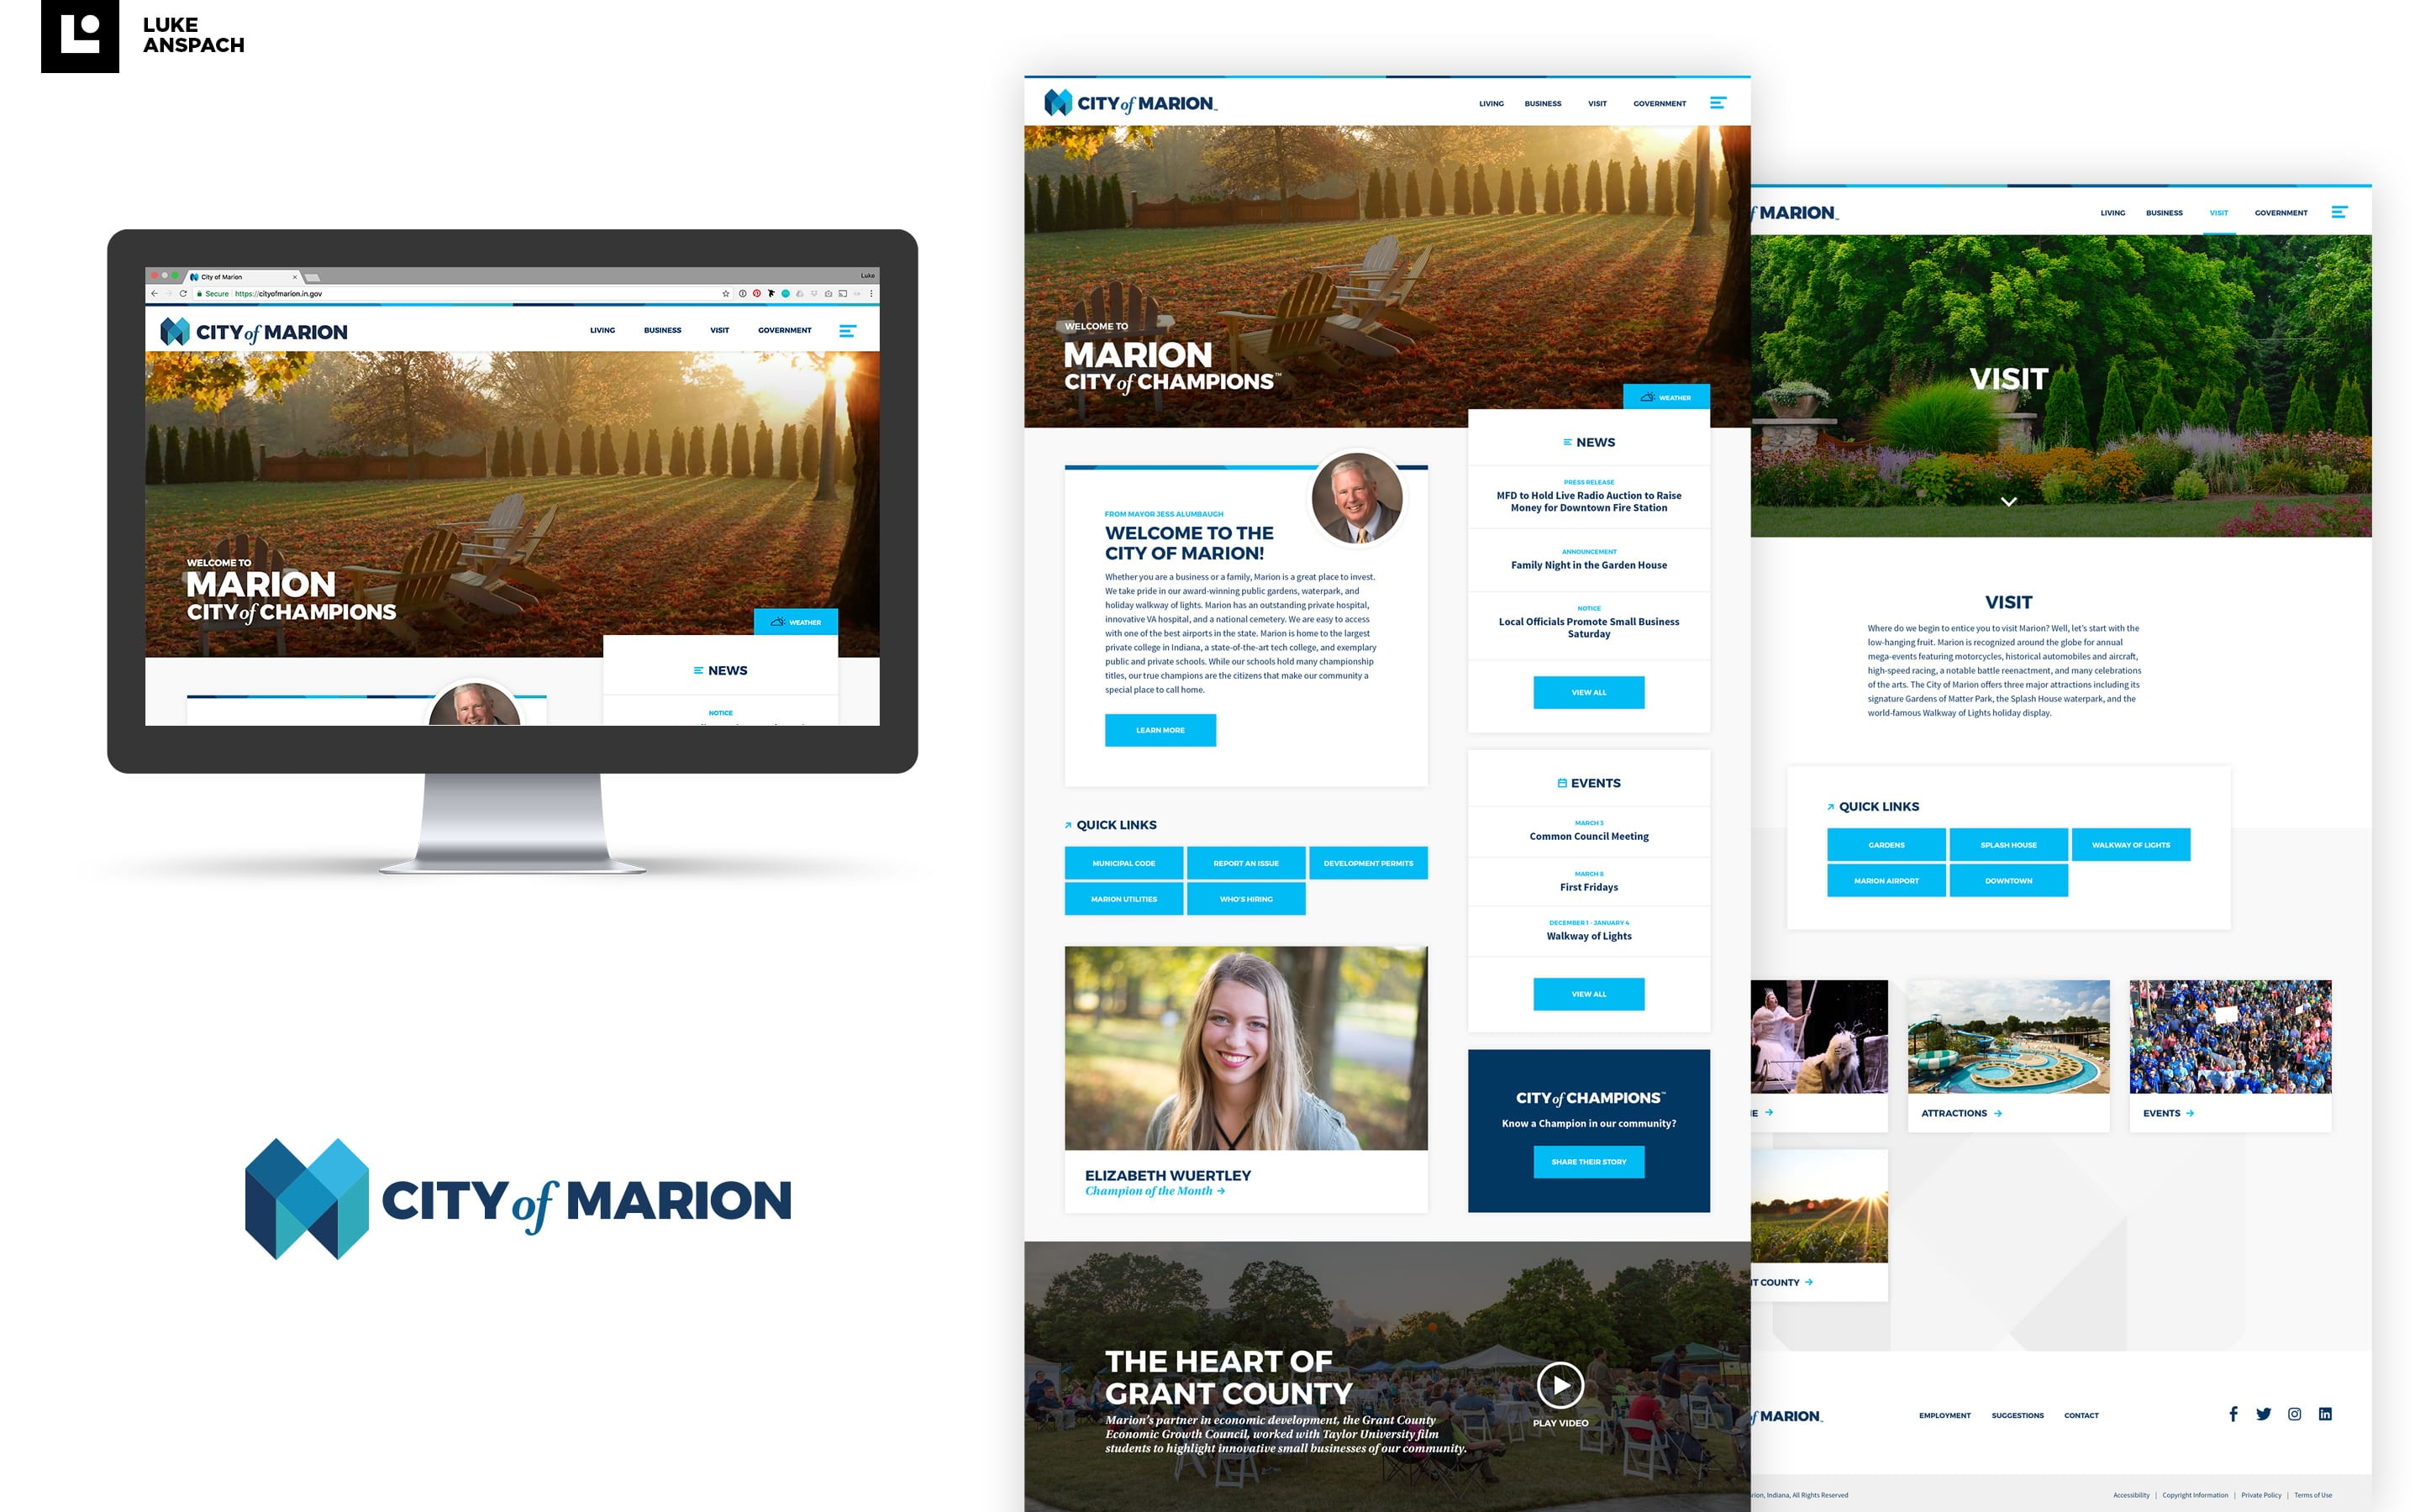 City of Marion Website Design